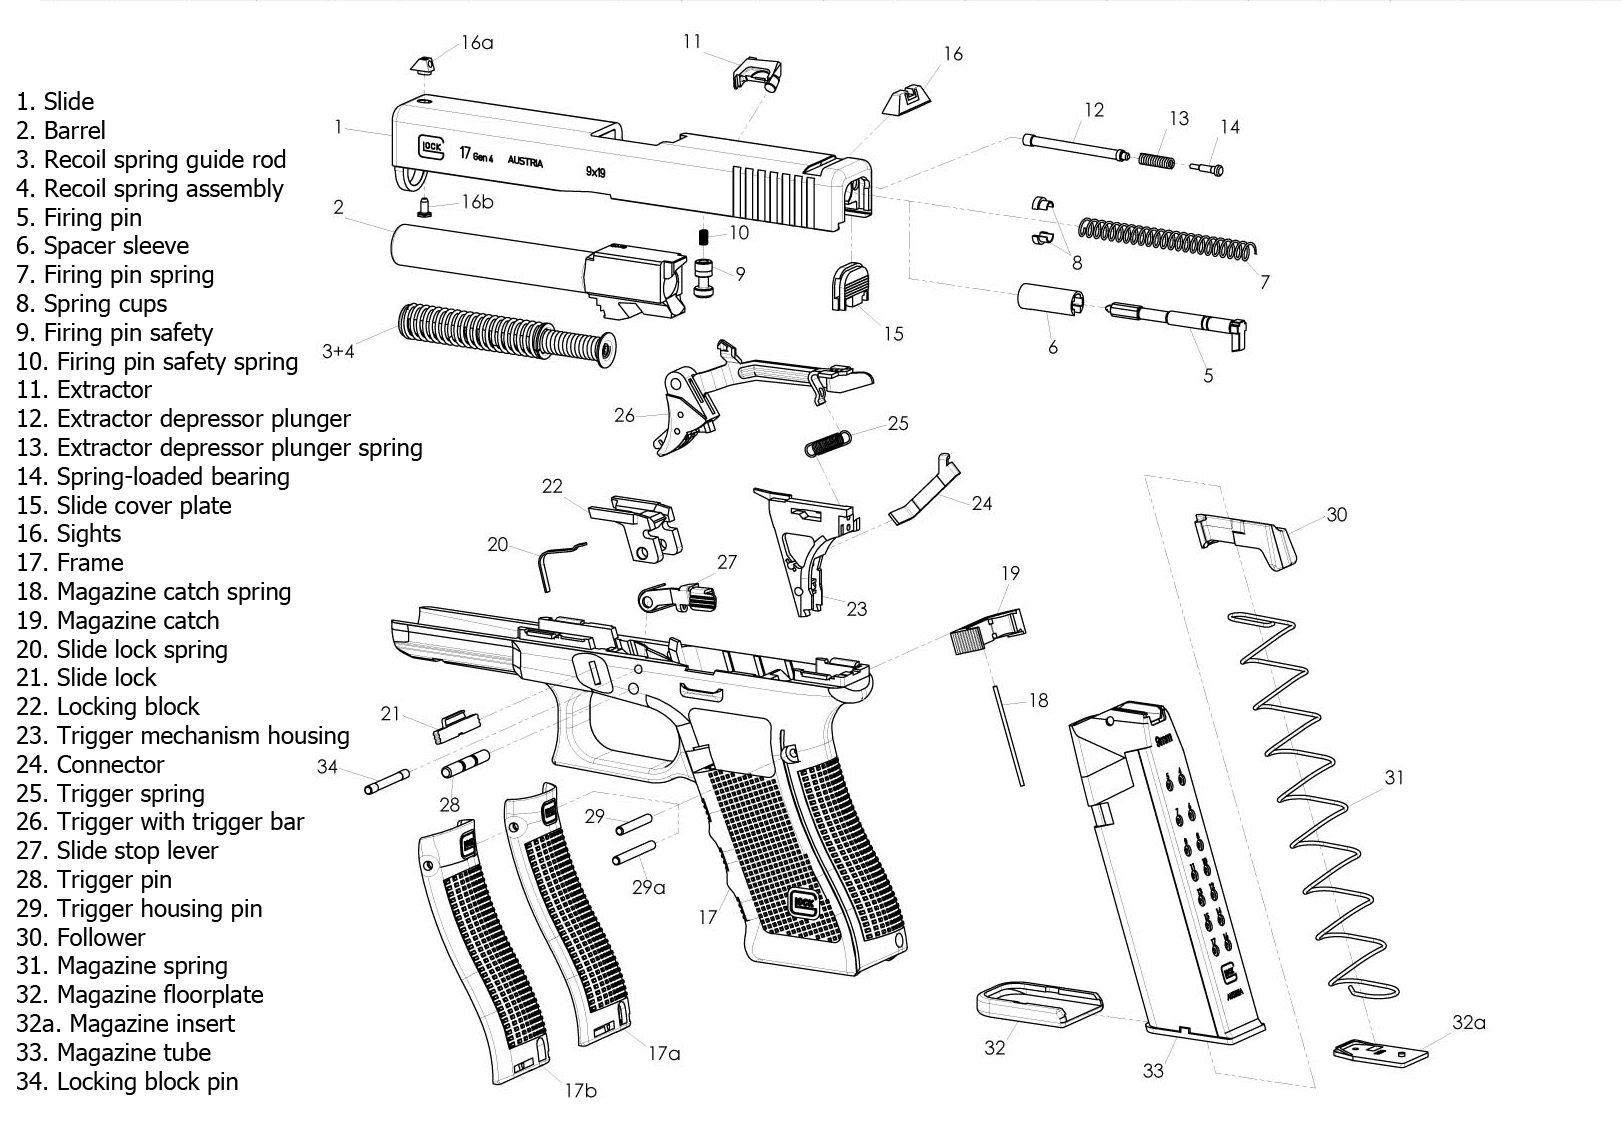 glock 22 exploded diagram 2001 jeep wrangler headlight wiring semi auto the savannah arsenal project